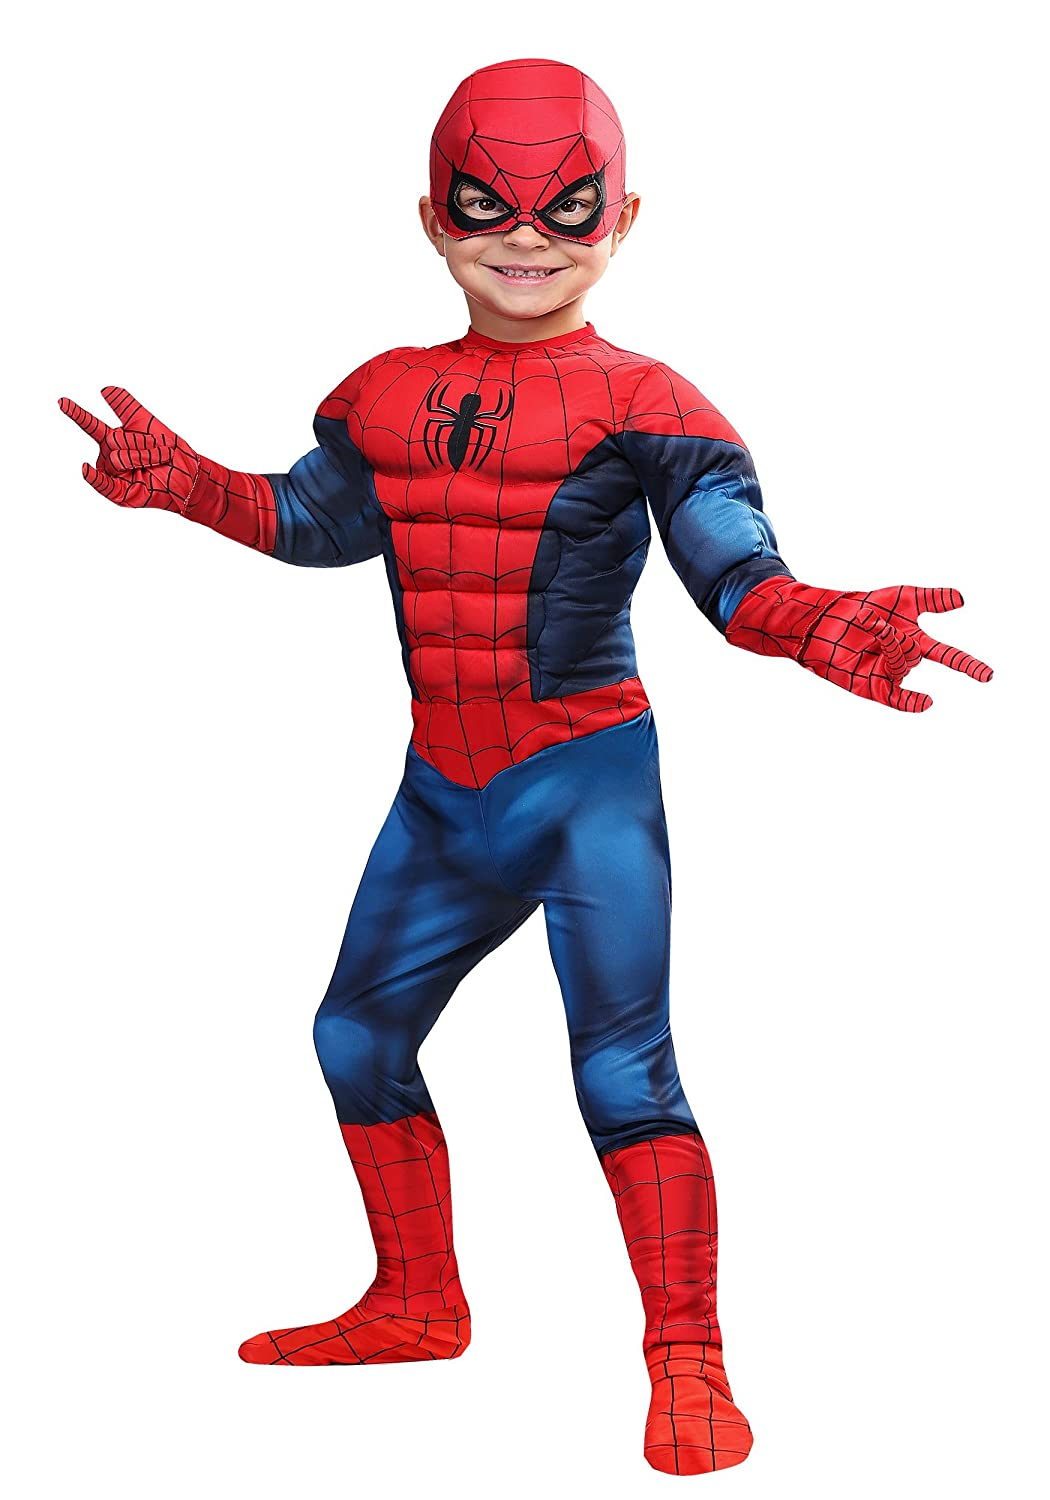 Marvel Spider-Man Toddler Costume